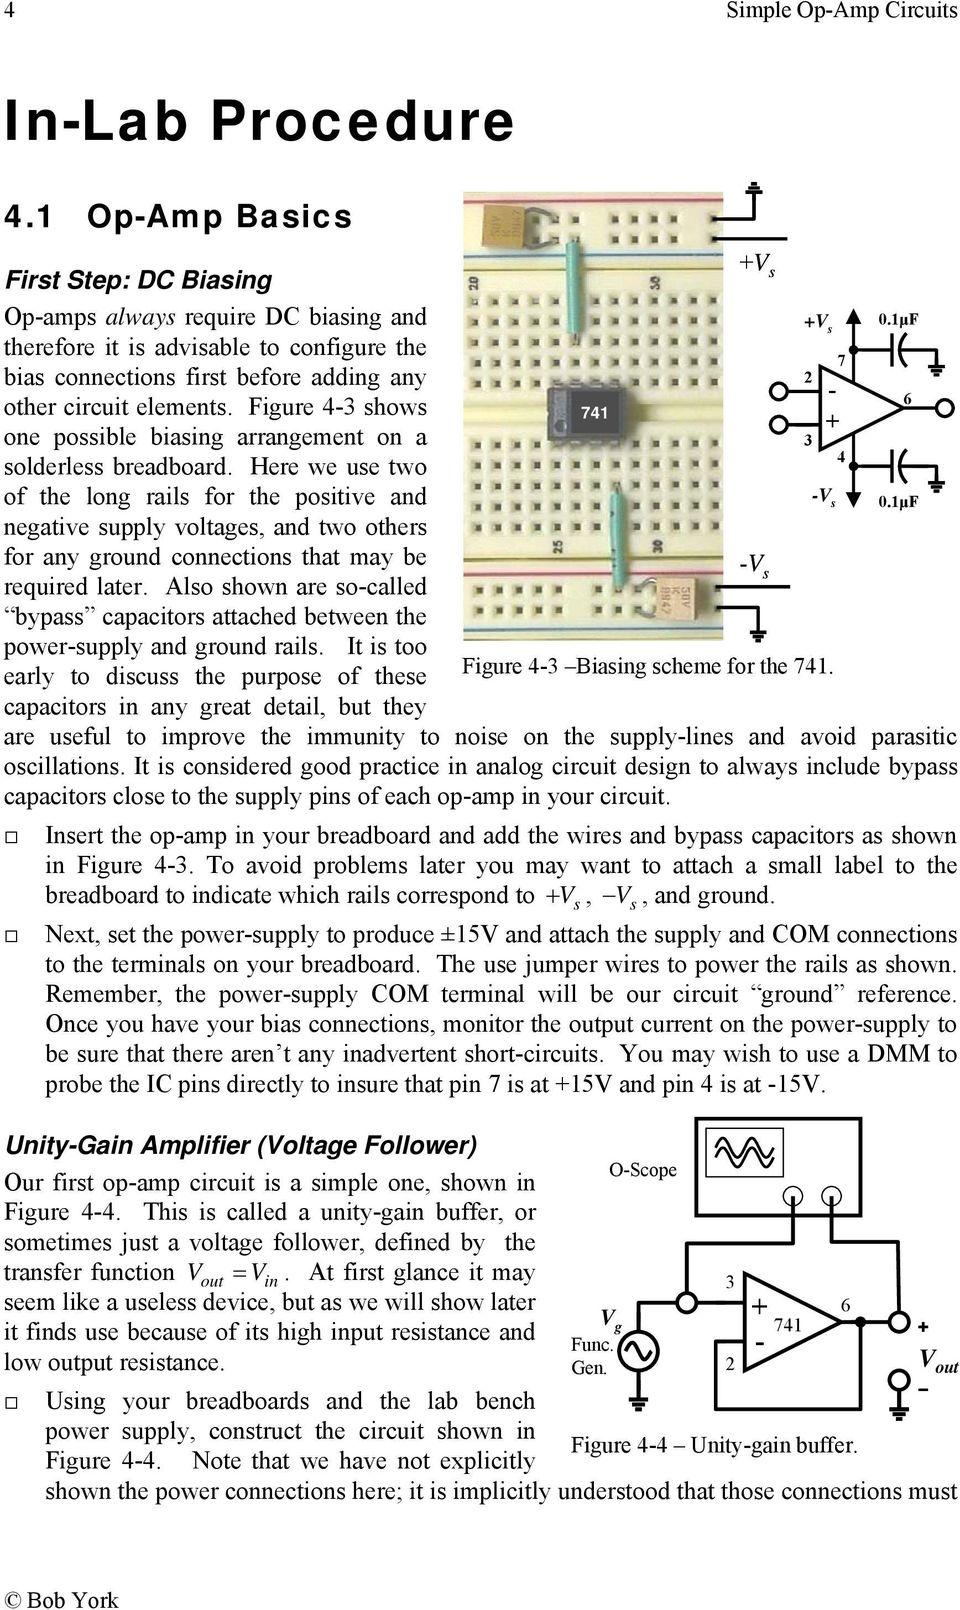 Simple Op Amp Circuits Pdf 741circuit1 Here We Use Two 4 Of The Long Rails For Positive And Negative Supply Voltages